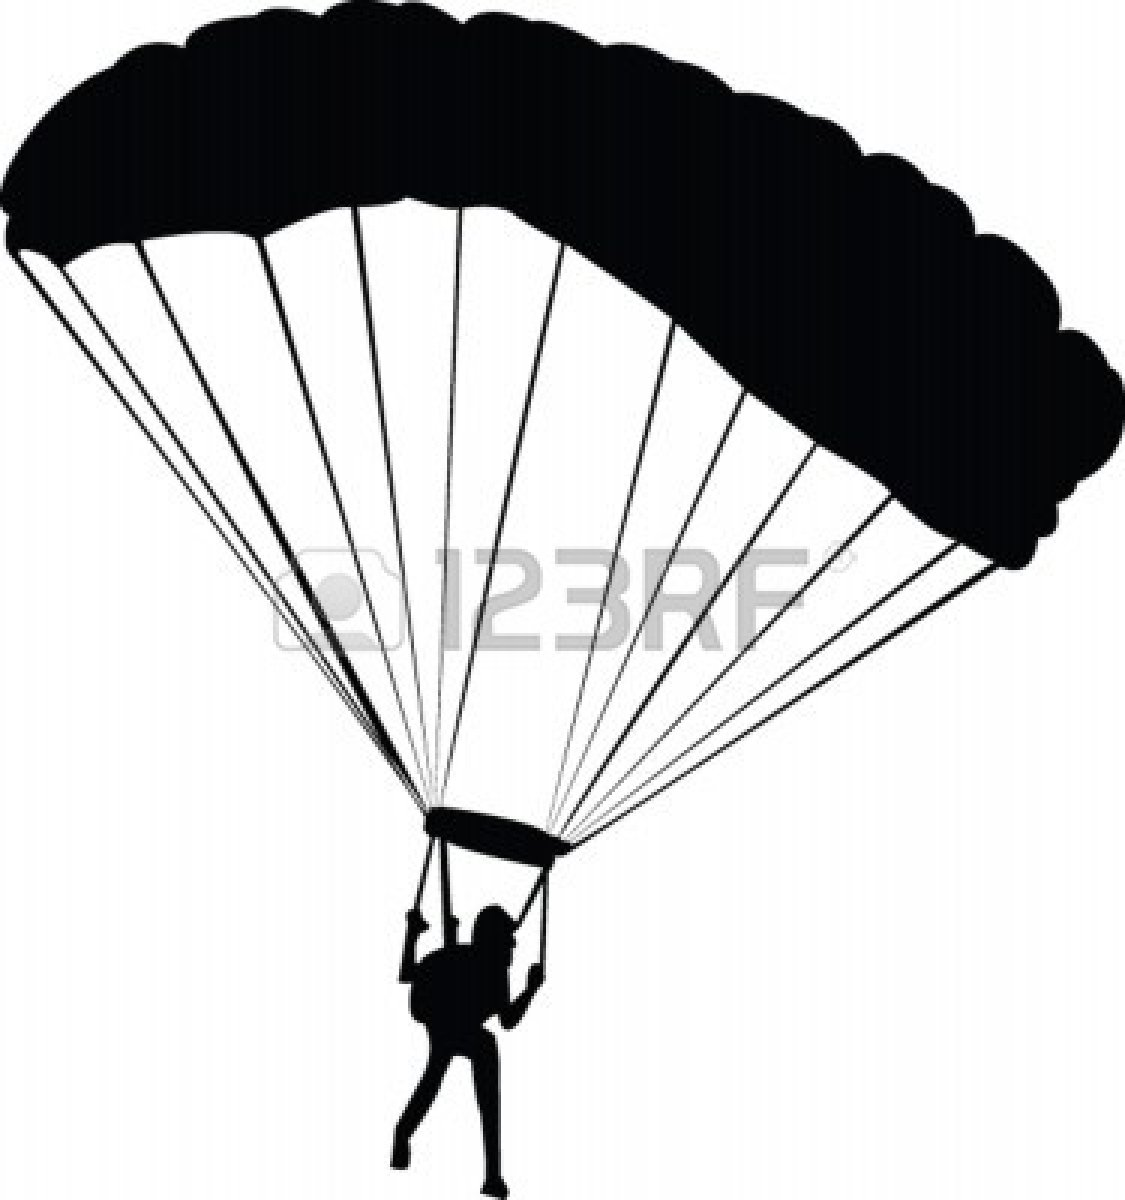 Ww2 paratrooper clipart jpg free download Paratrooper 20clipart | Clipart Panda - Free Clipart Images jpg free download